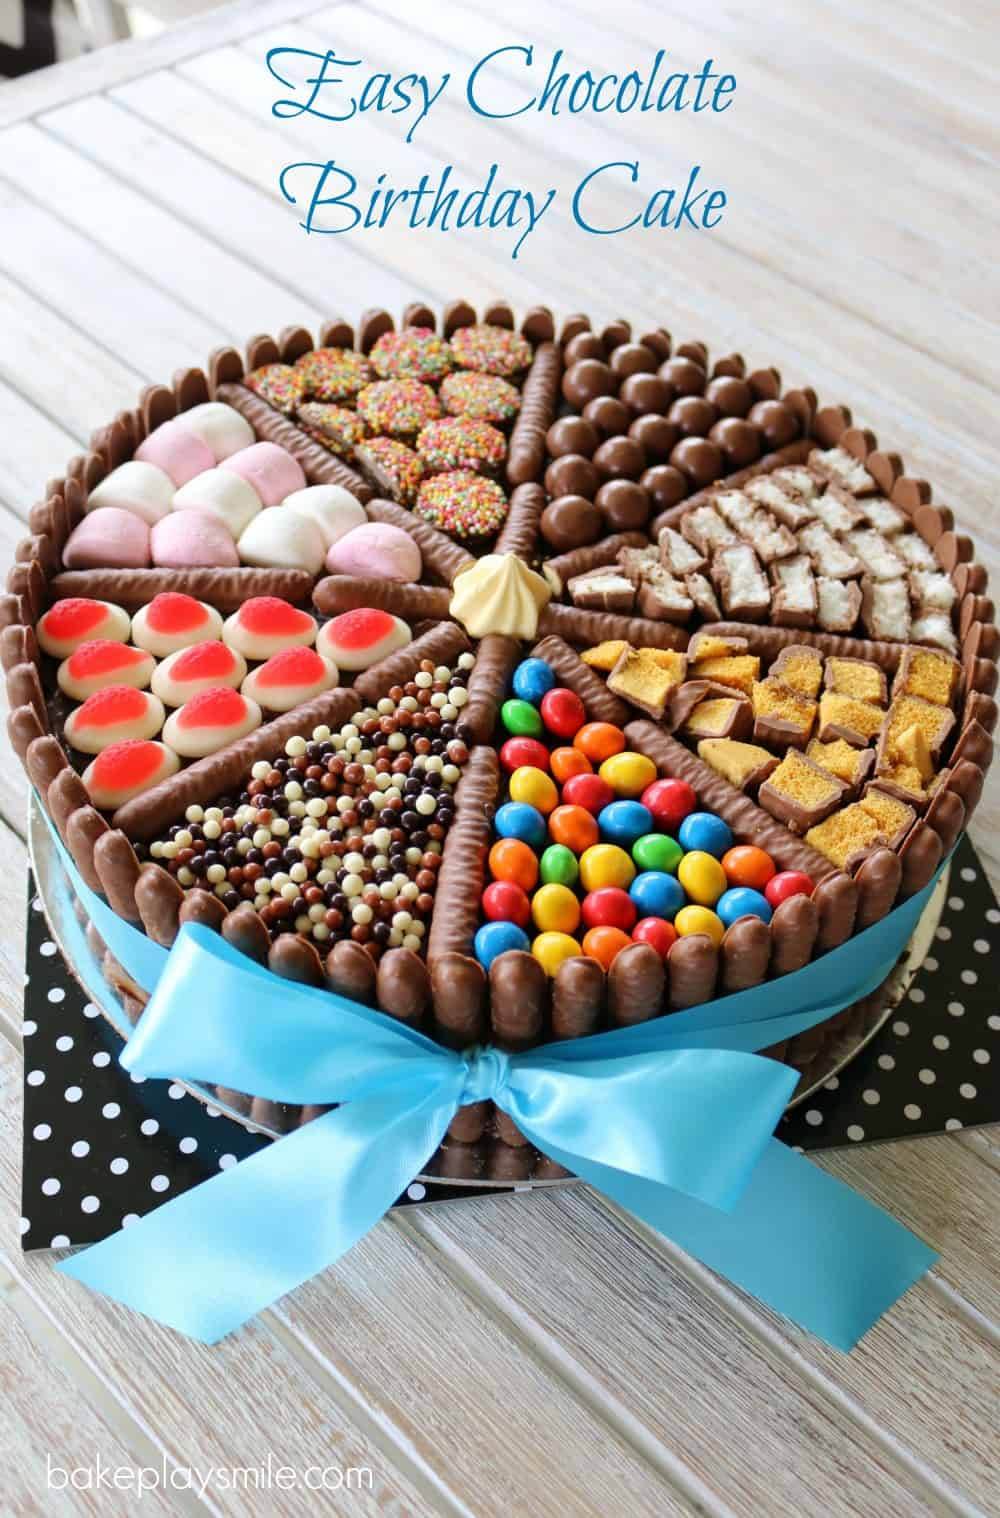 Best ideas about Simple Birthday Cake Recipes . Save or Pin Easy Chocolate Birthday Cake lies chocolates & more Now.